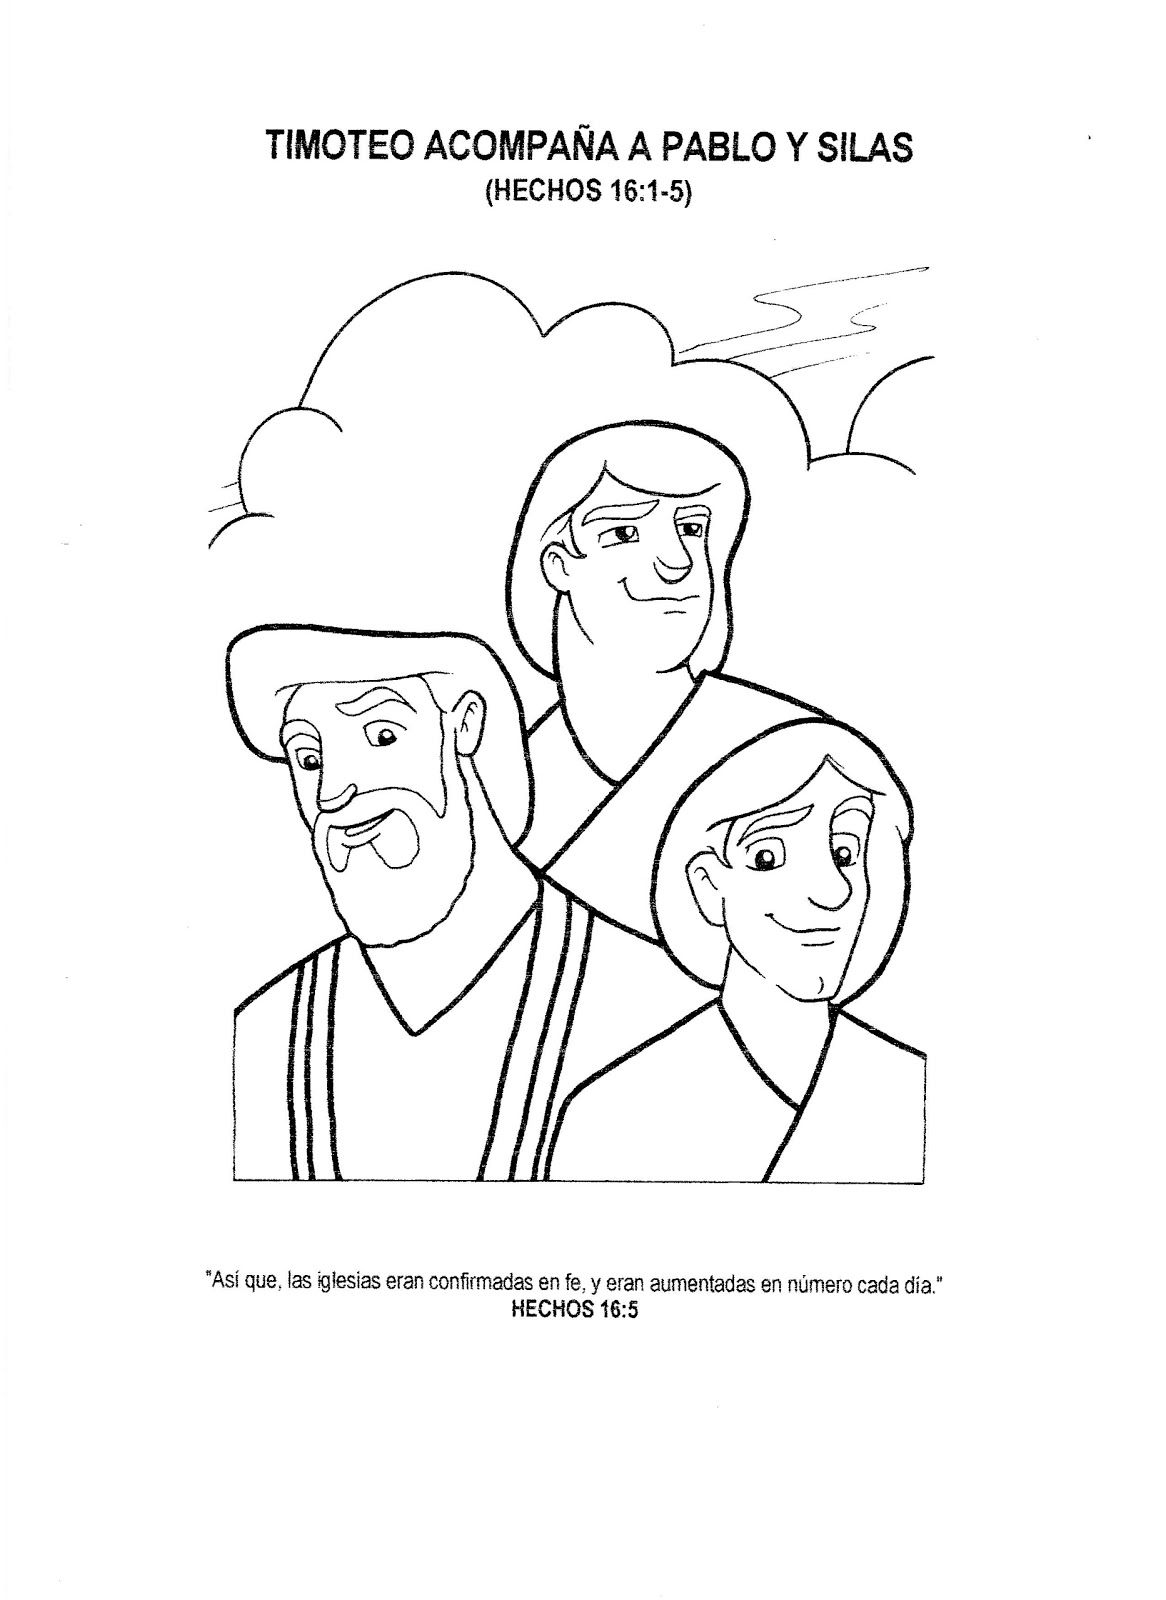 daniel eats vegetables coloring sheet bible prophecy stock photos images pictures shutterstock eats vegetables daniel coloring sheet